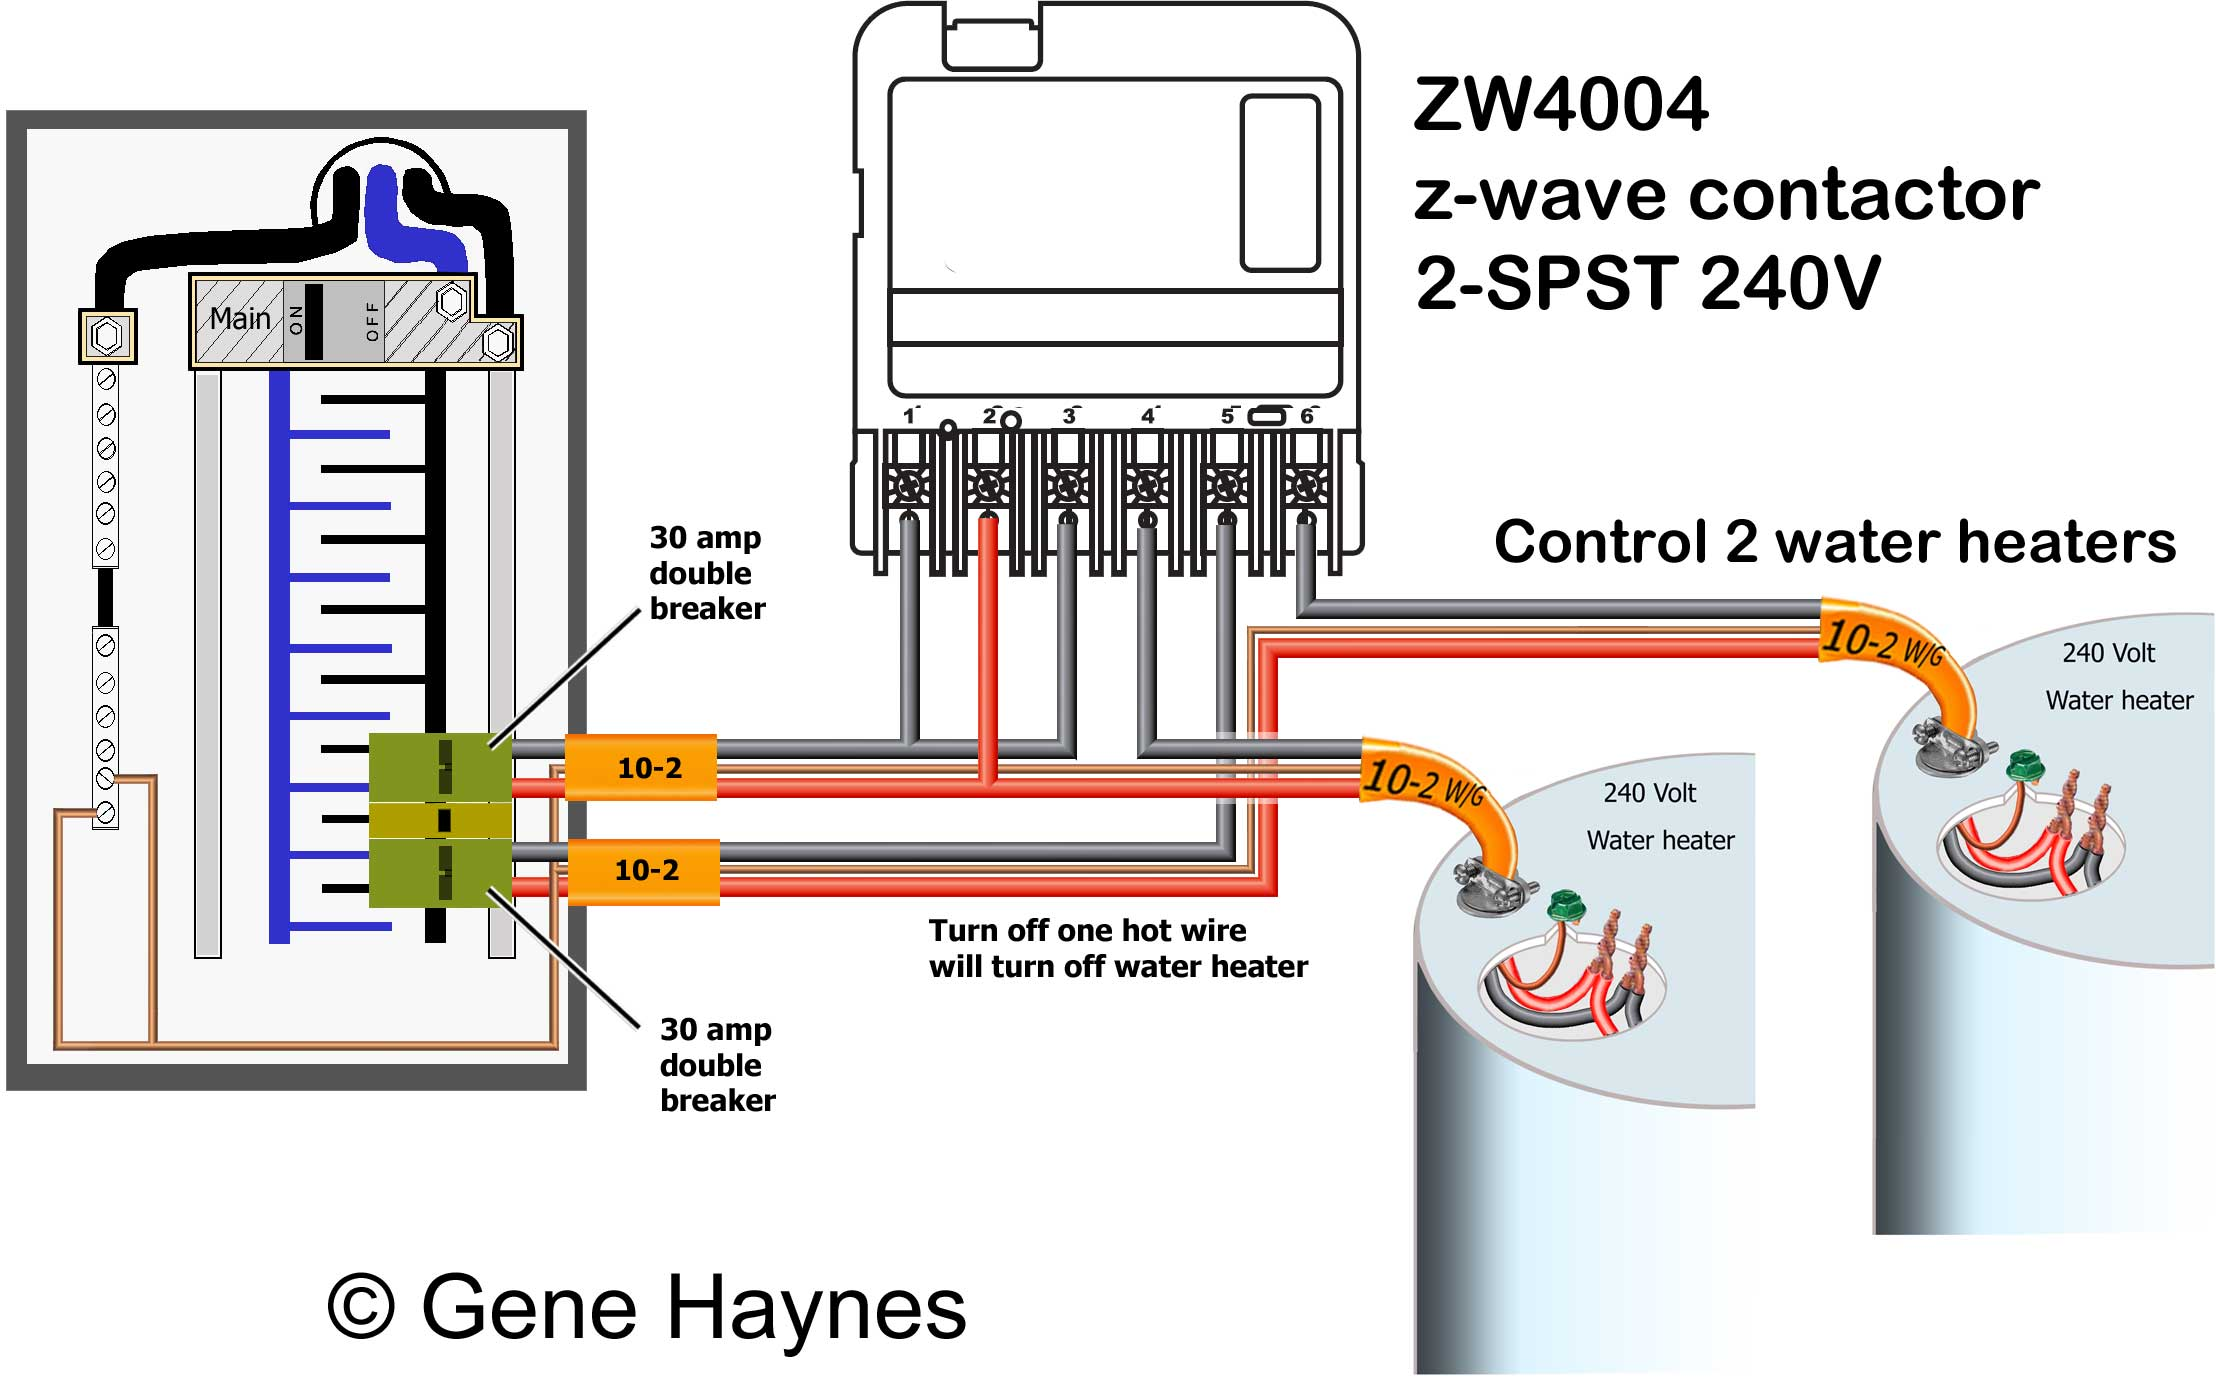 zw40004 wiring 240 2 SPST how to wire ca3750 z wave contactor zwave basics Trailer Wiring Diagram at gsmportal.co